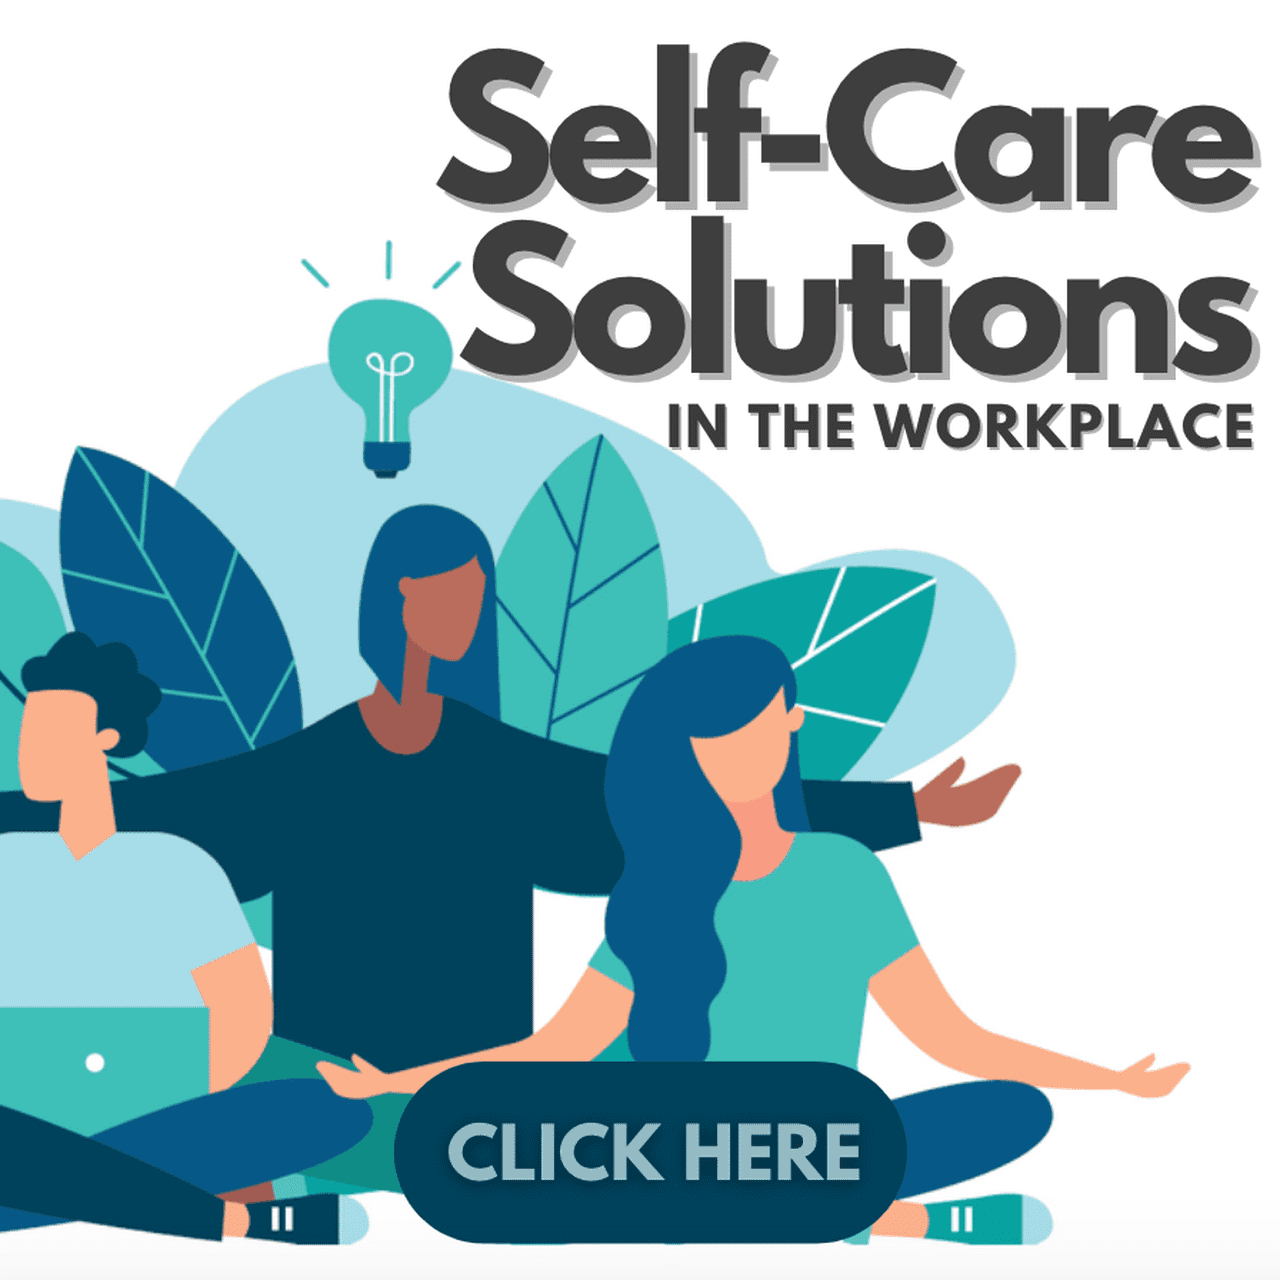 Self-Care Solutions at Work